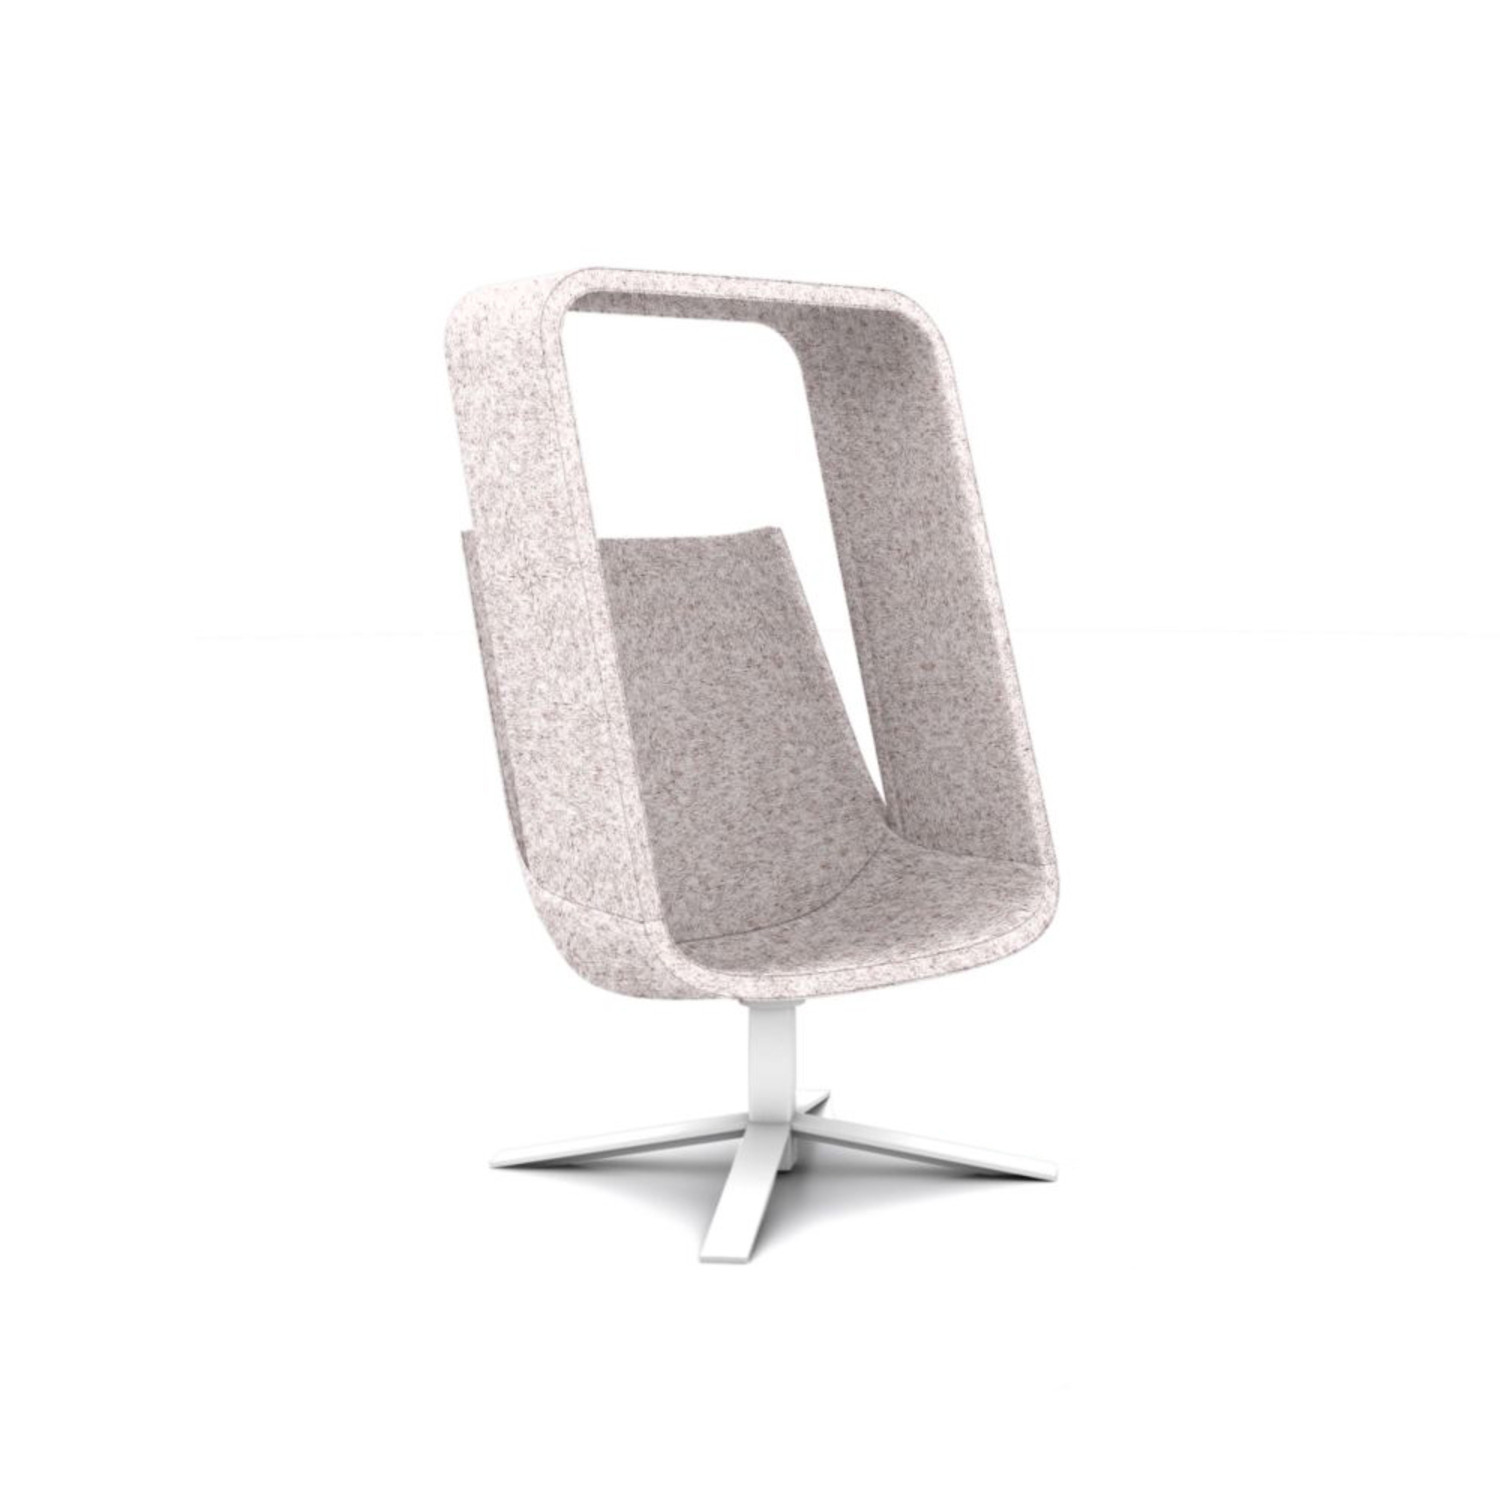 Admirable Windowseat Canopy Chair Chartreuse Haworth Touch Of Modern Ibusinesslaw Wood Chair Design Ideas Ibusinesslaworg